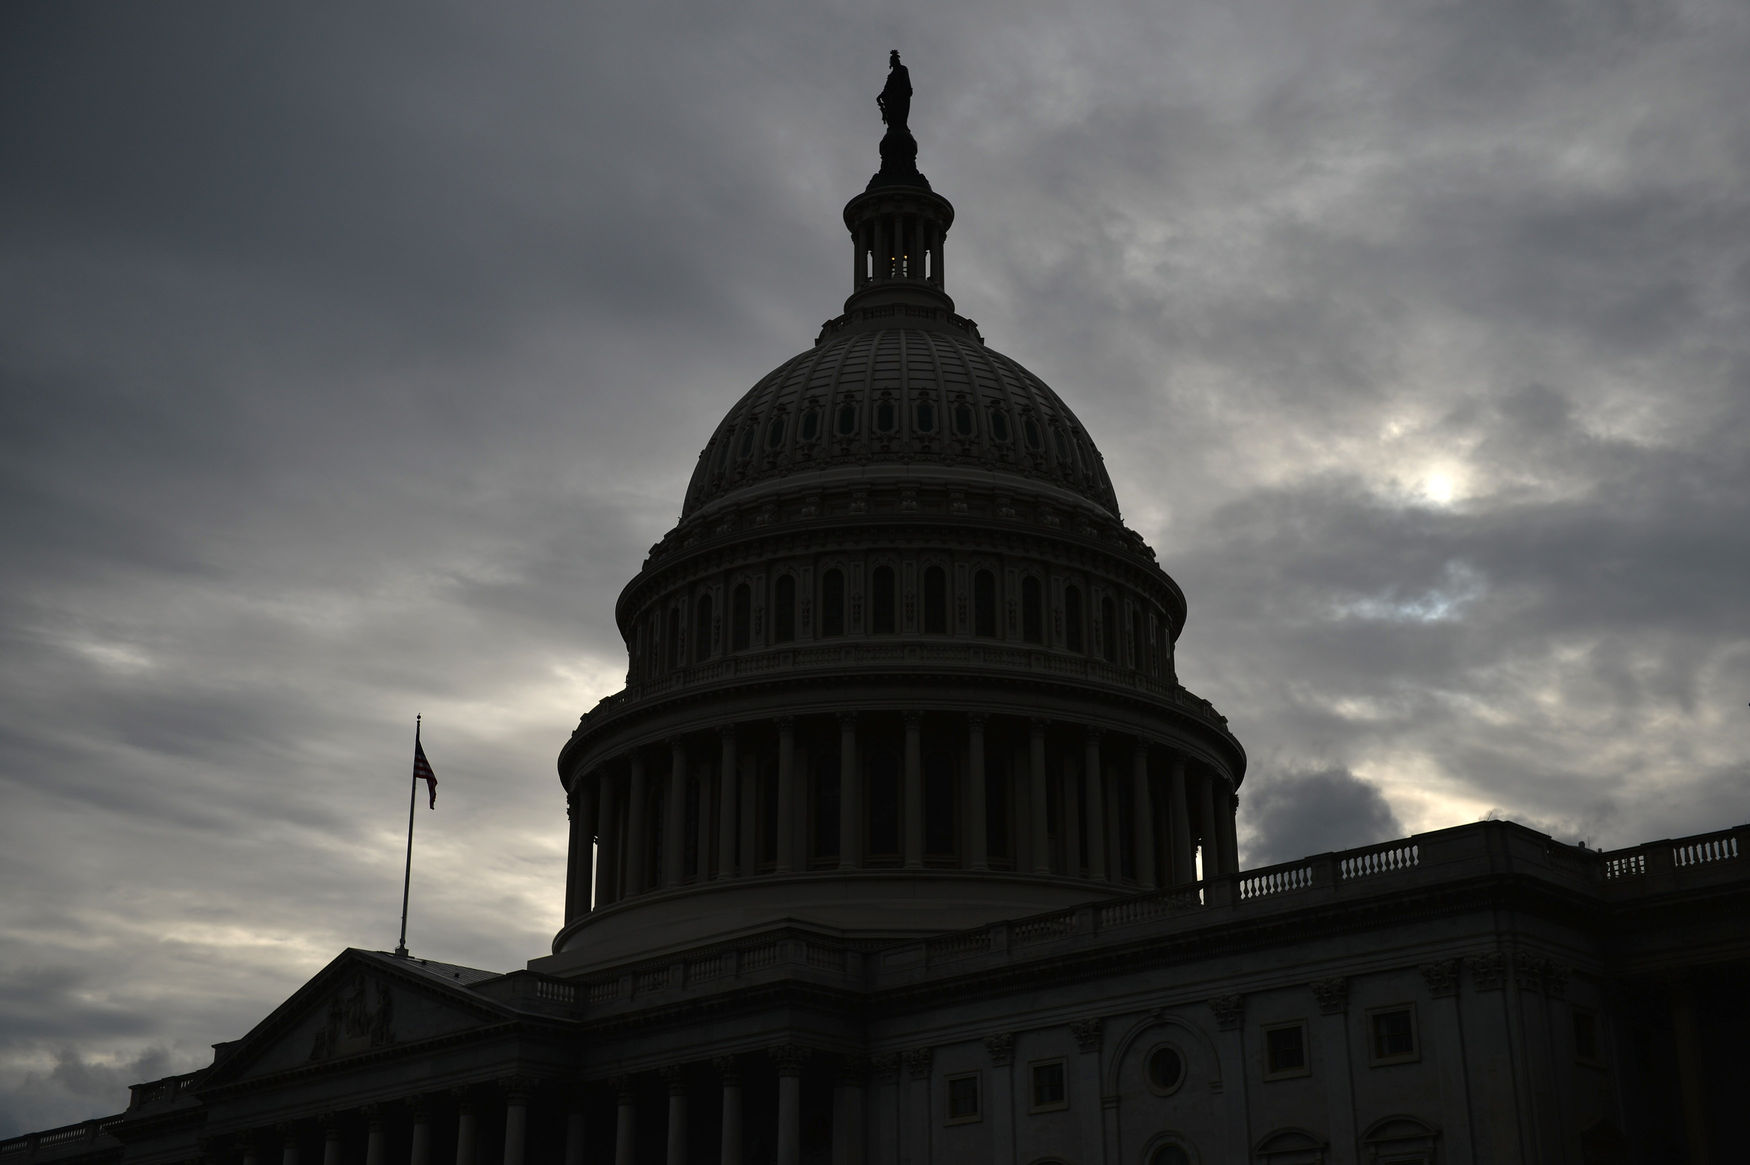 Congress works to end the Government Shutdown and the Debt Limit in Washington, D.C.